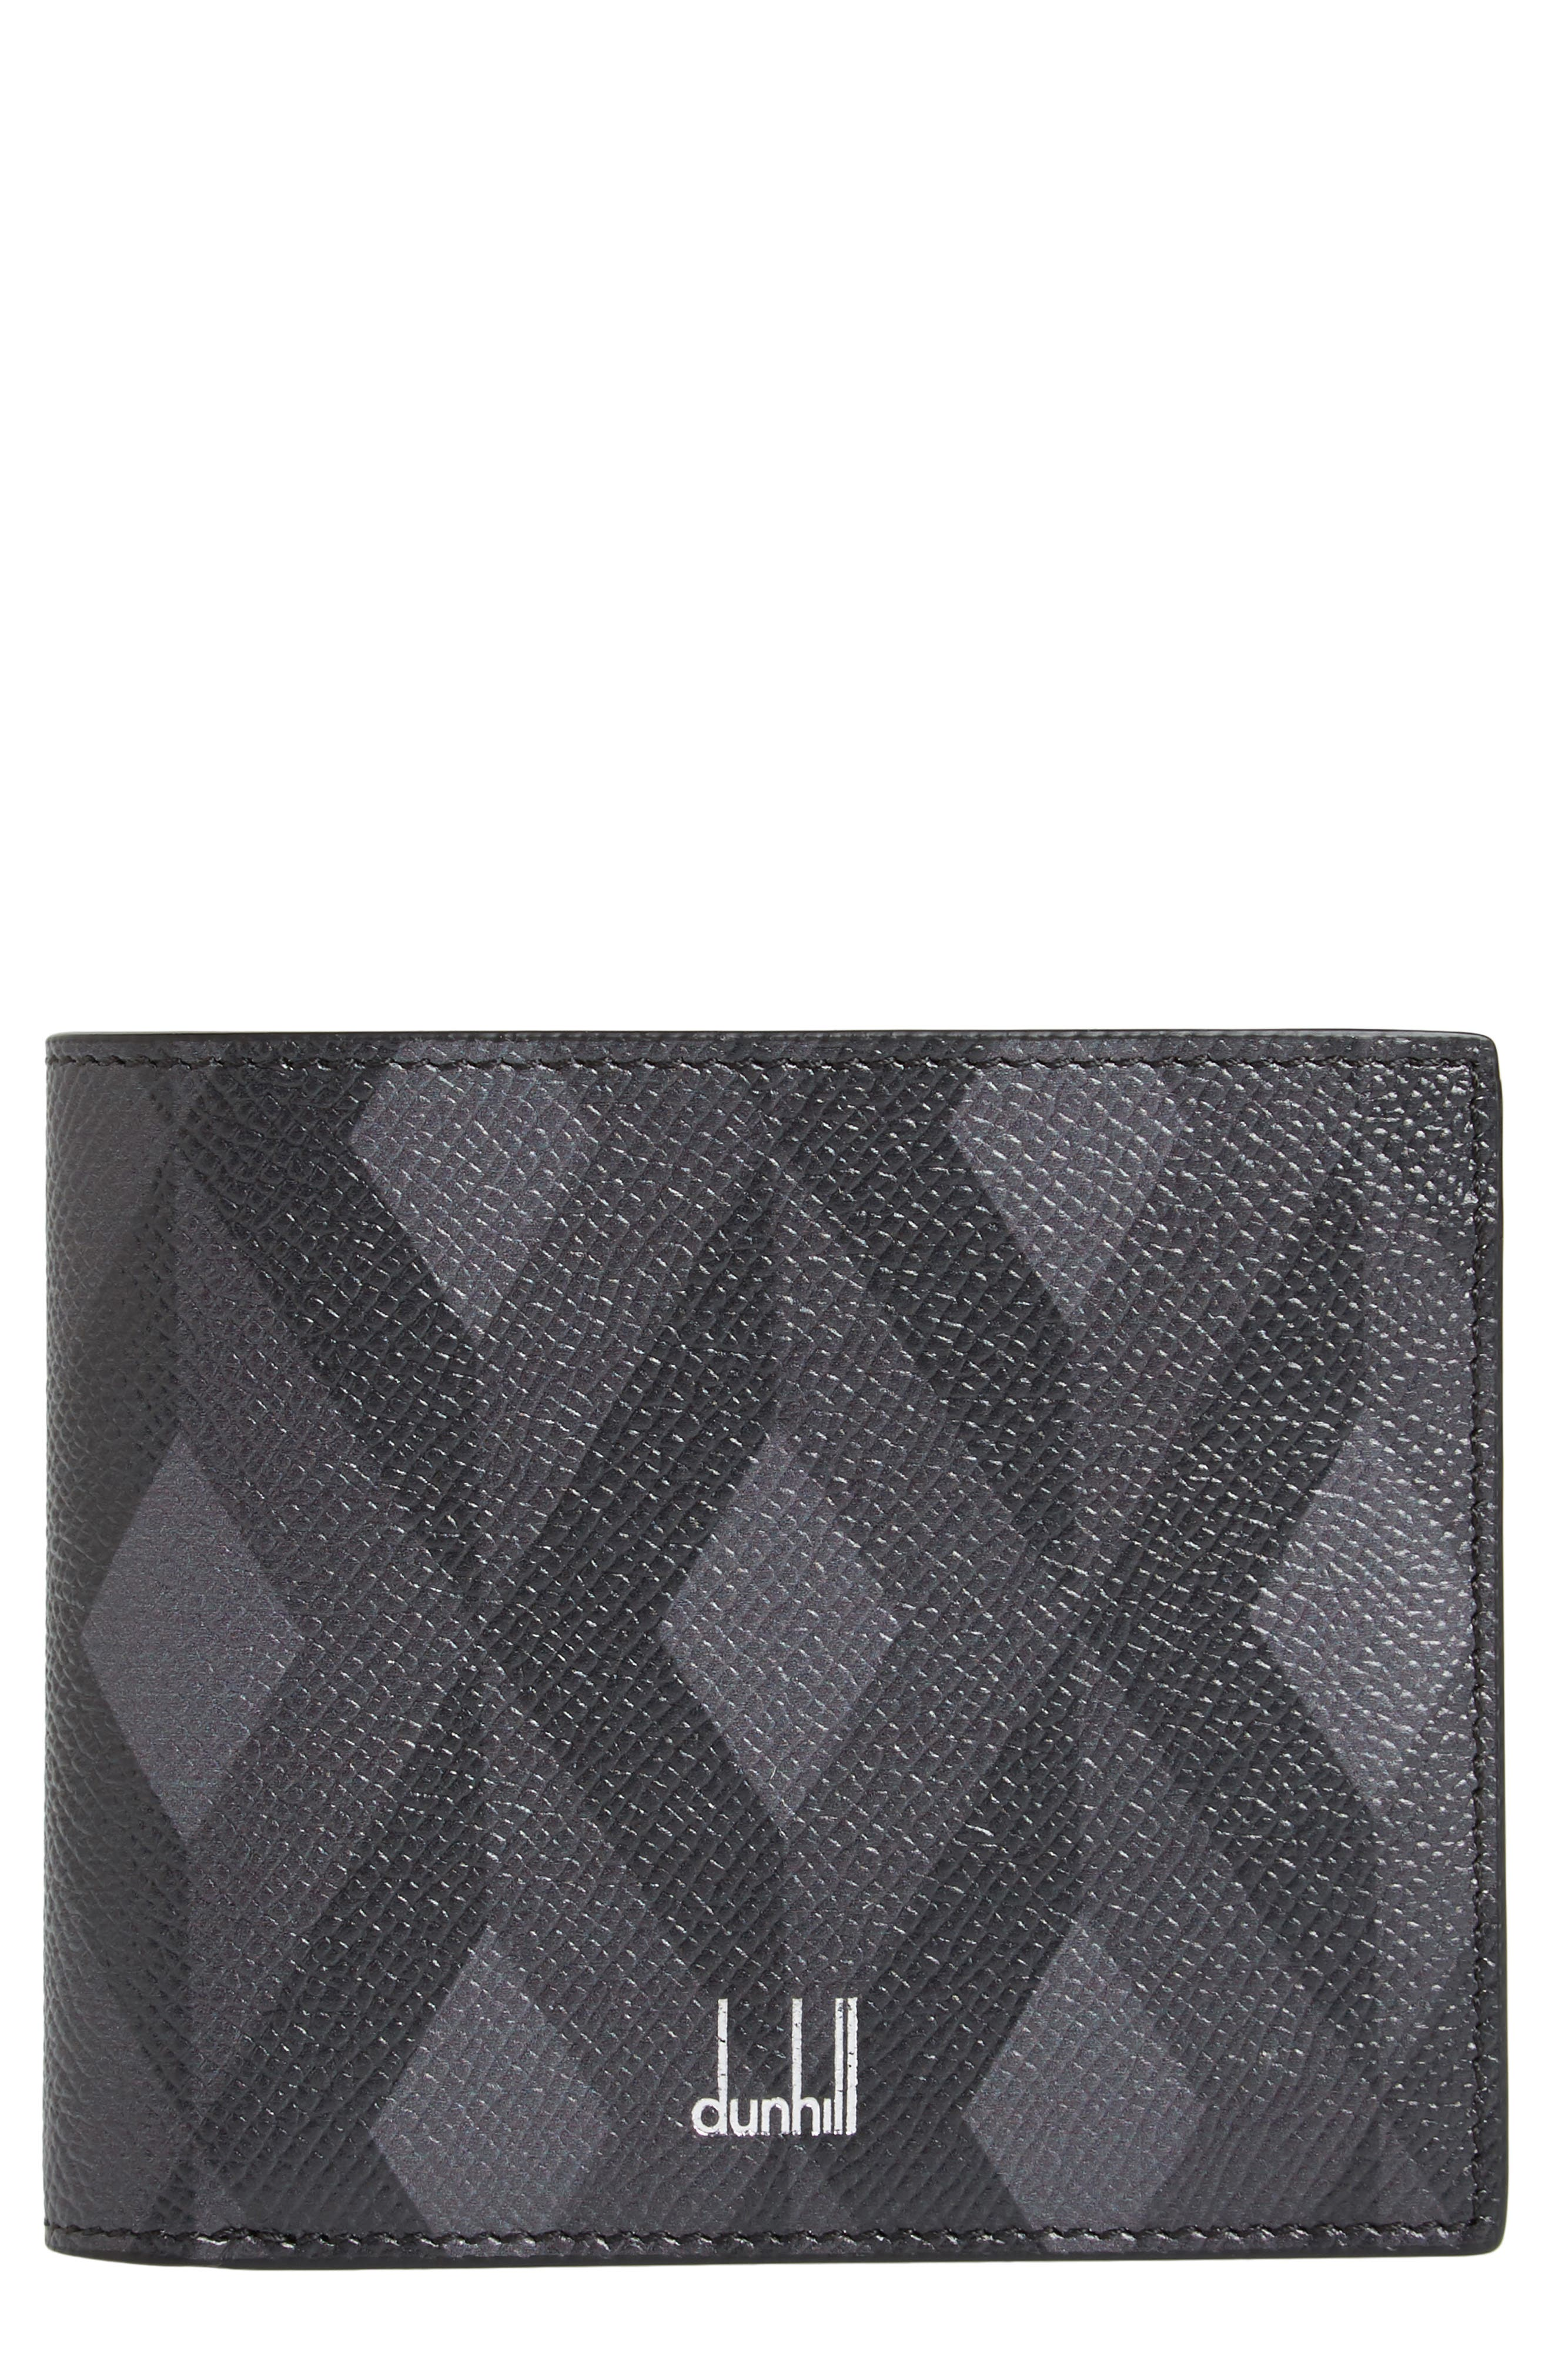 Dunhill Cadogan Leather Wallet